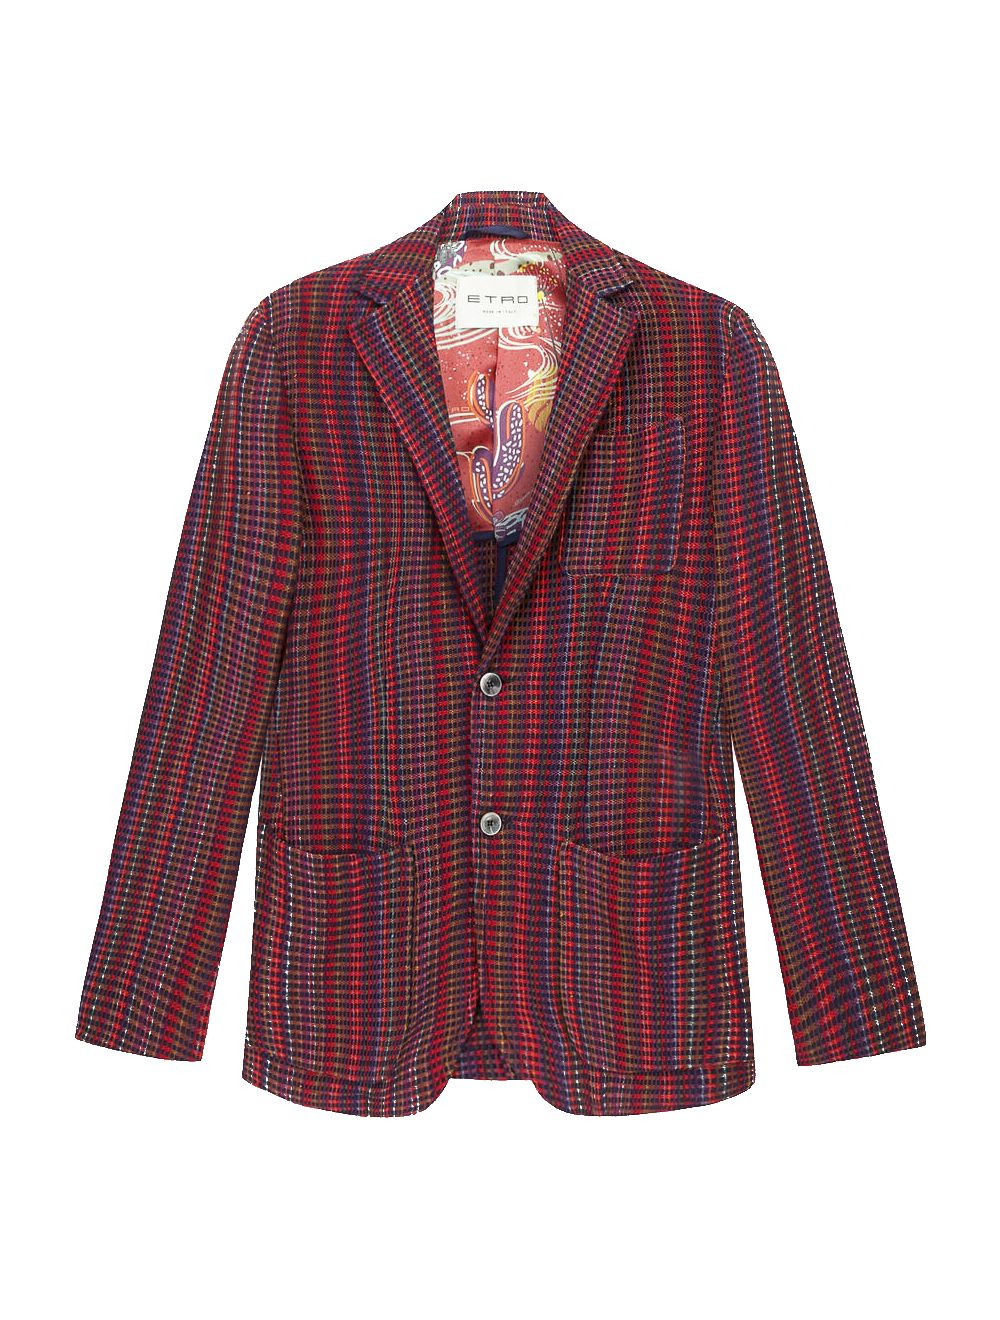 Etro Jacket  - Dark Red